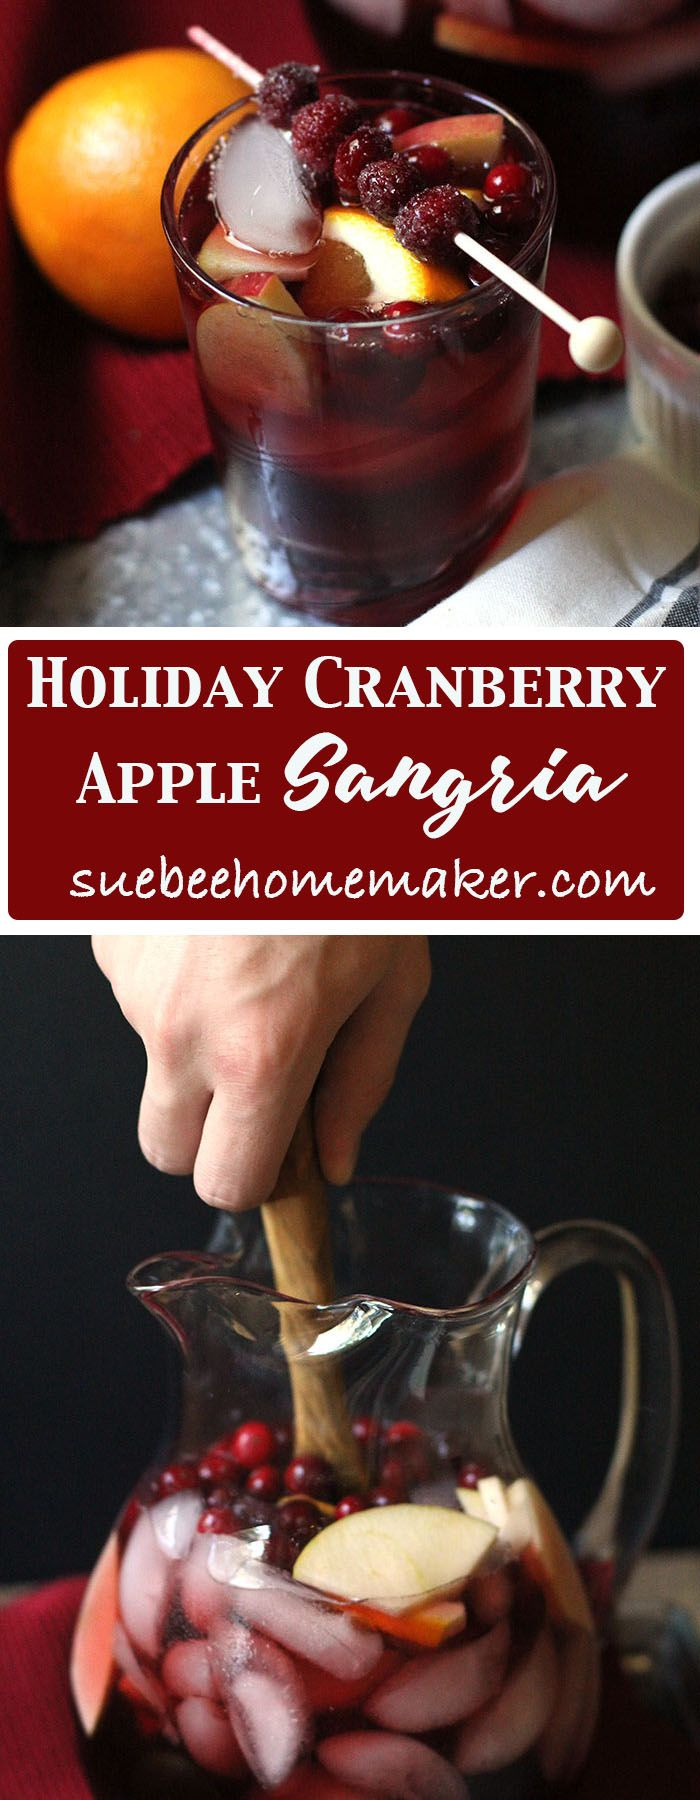 Holiday Cranberry Apple Sangria Combines Your Favorite Red Wine With Brandy Cointreau A Combo Of C Easy Juice Recipes Apple Cranberry Delicious Drink Recipes